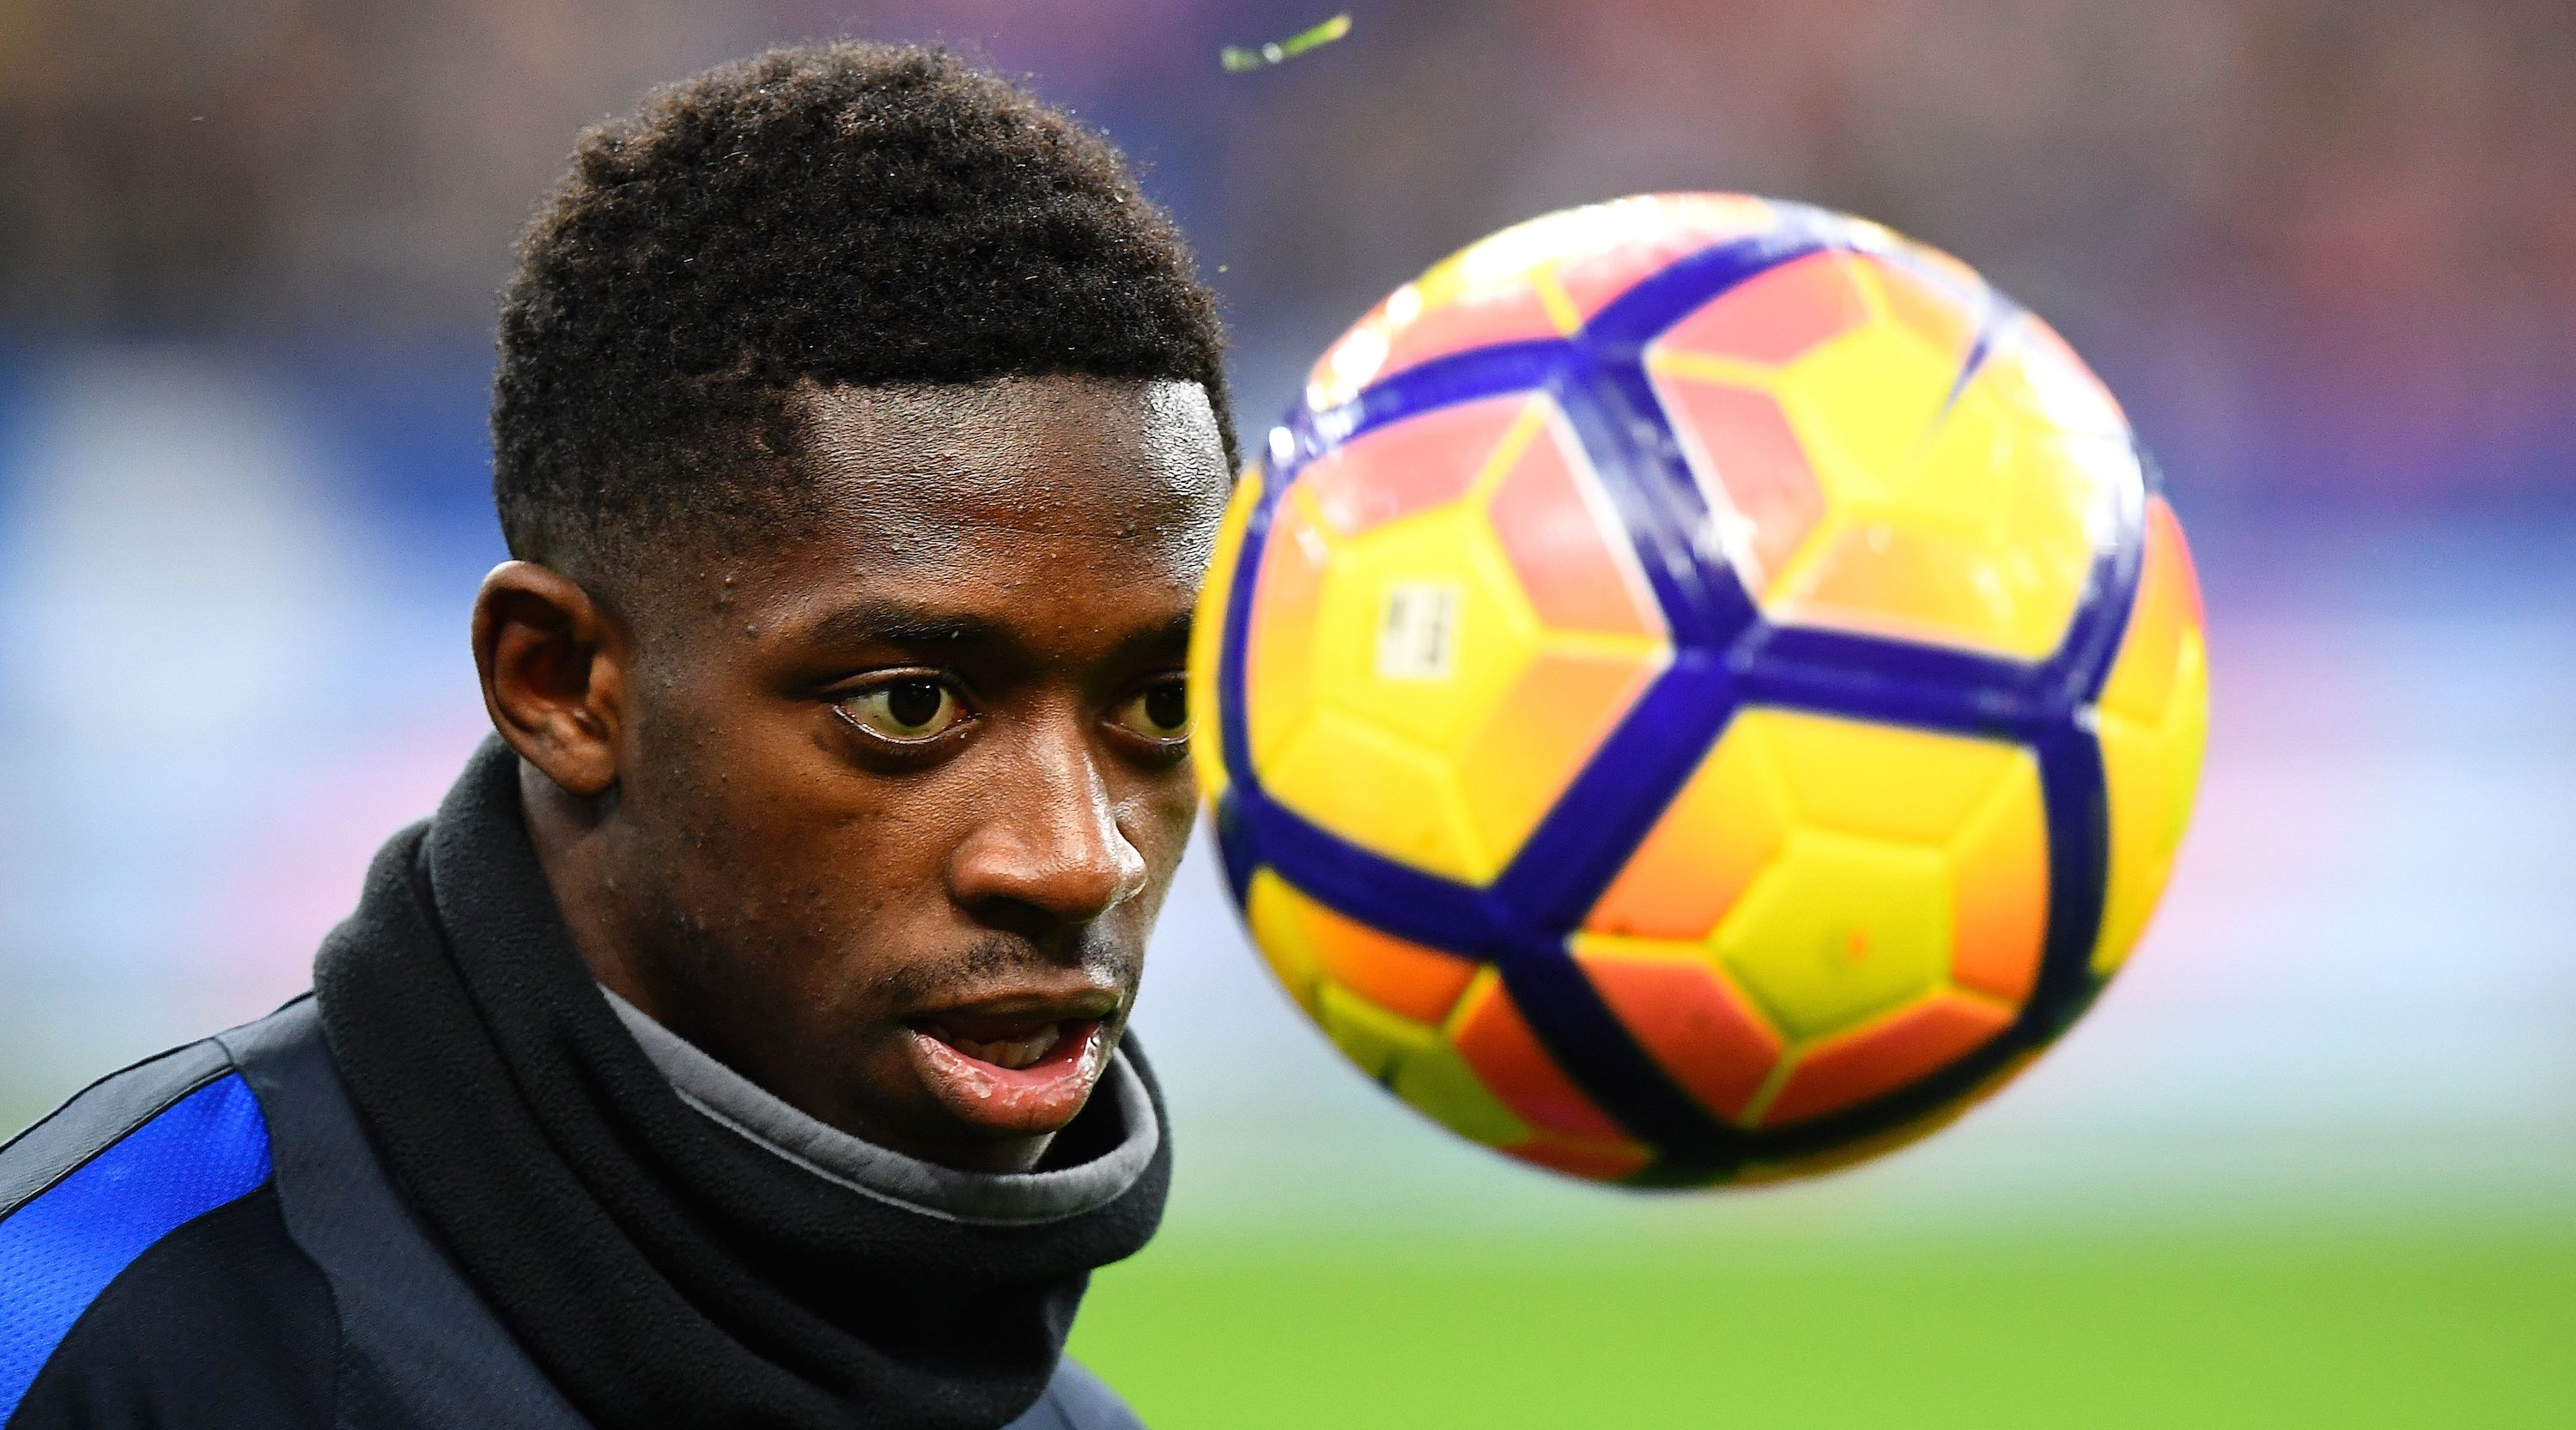 France's forward Ousmane Dembele eyes the ball during the 2018 World Cup group A qualifying football match between France and Sweden at the Stade de France in Saint-Denis, north of Paris, on November 11, 2016. France won 2-1. / AFP / FRANCK FIFE (Photo credit should read FRANCK FIFE/AFP/Getty Images)